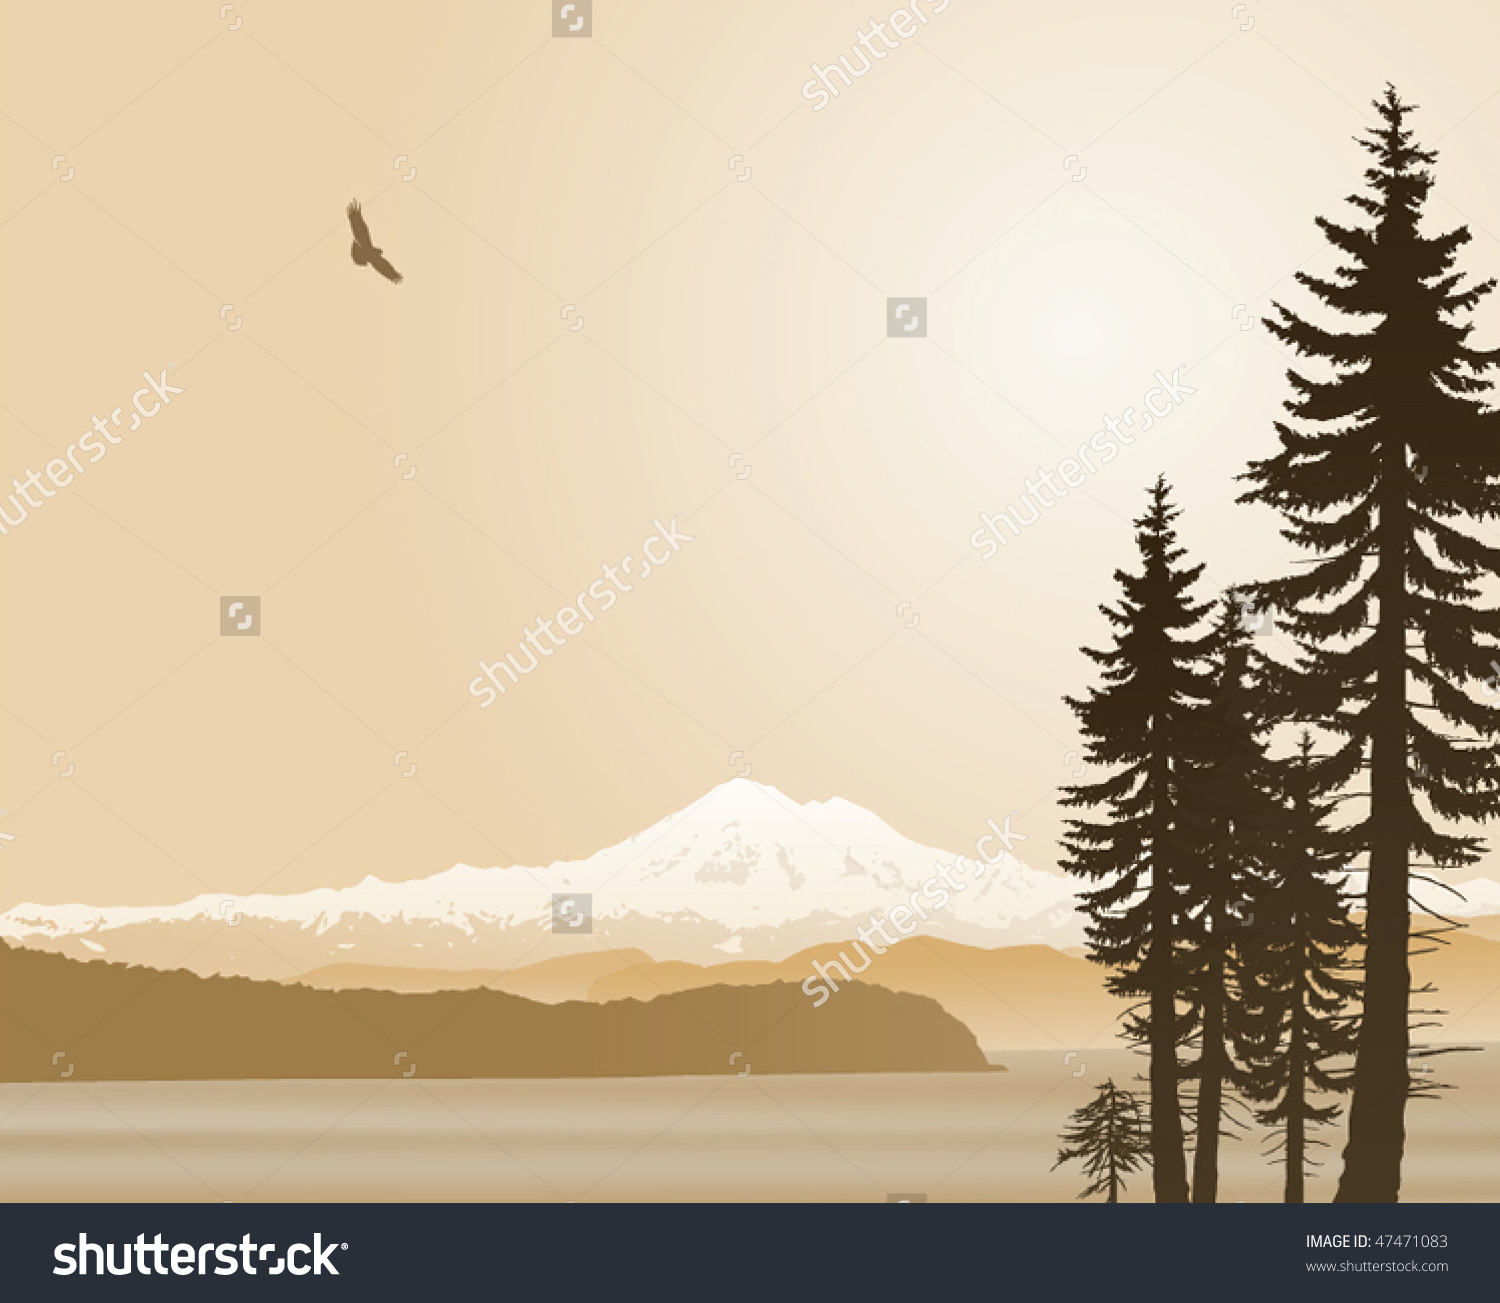 Mount Baker Washington State Vector Illustration In Sepia. Looking.